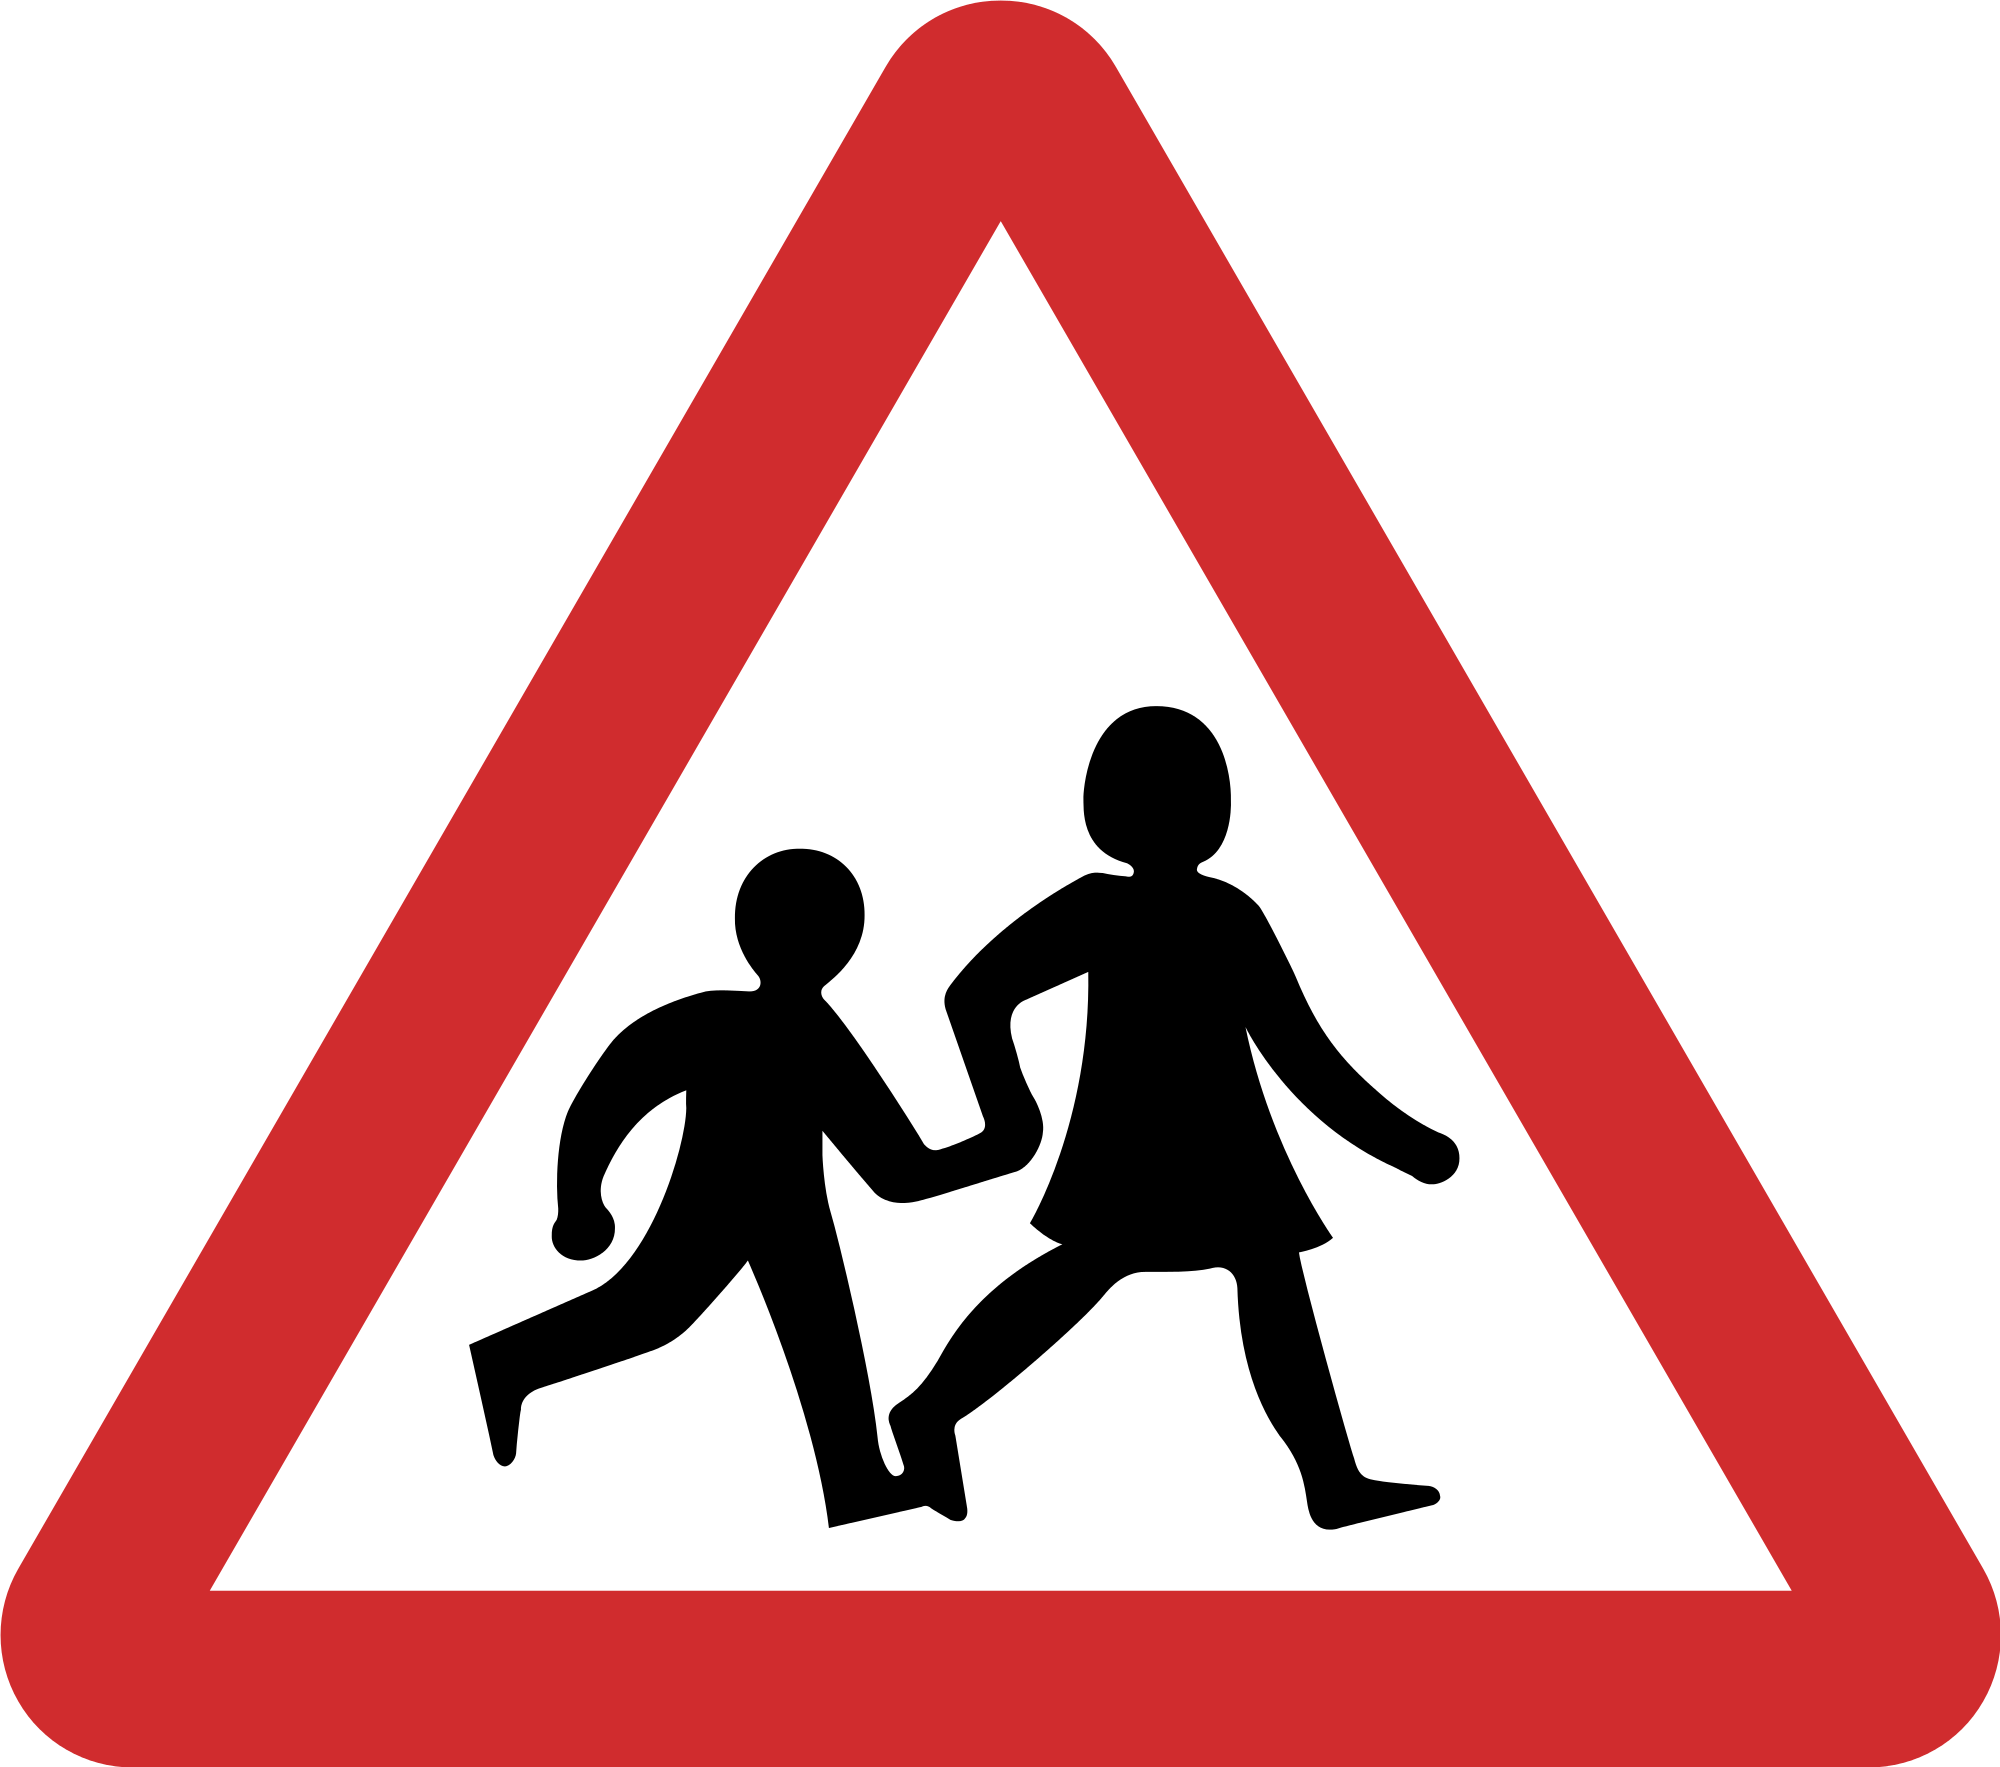 Roadsign vector silhouette. File nepal road sign